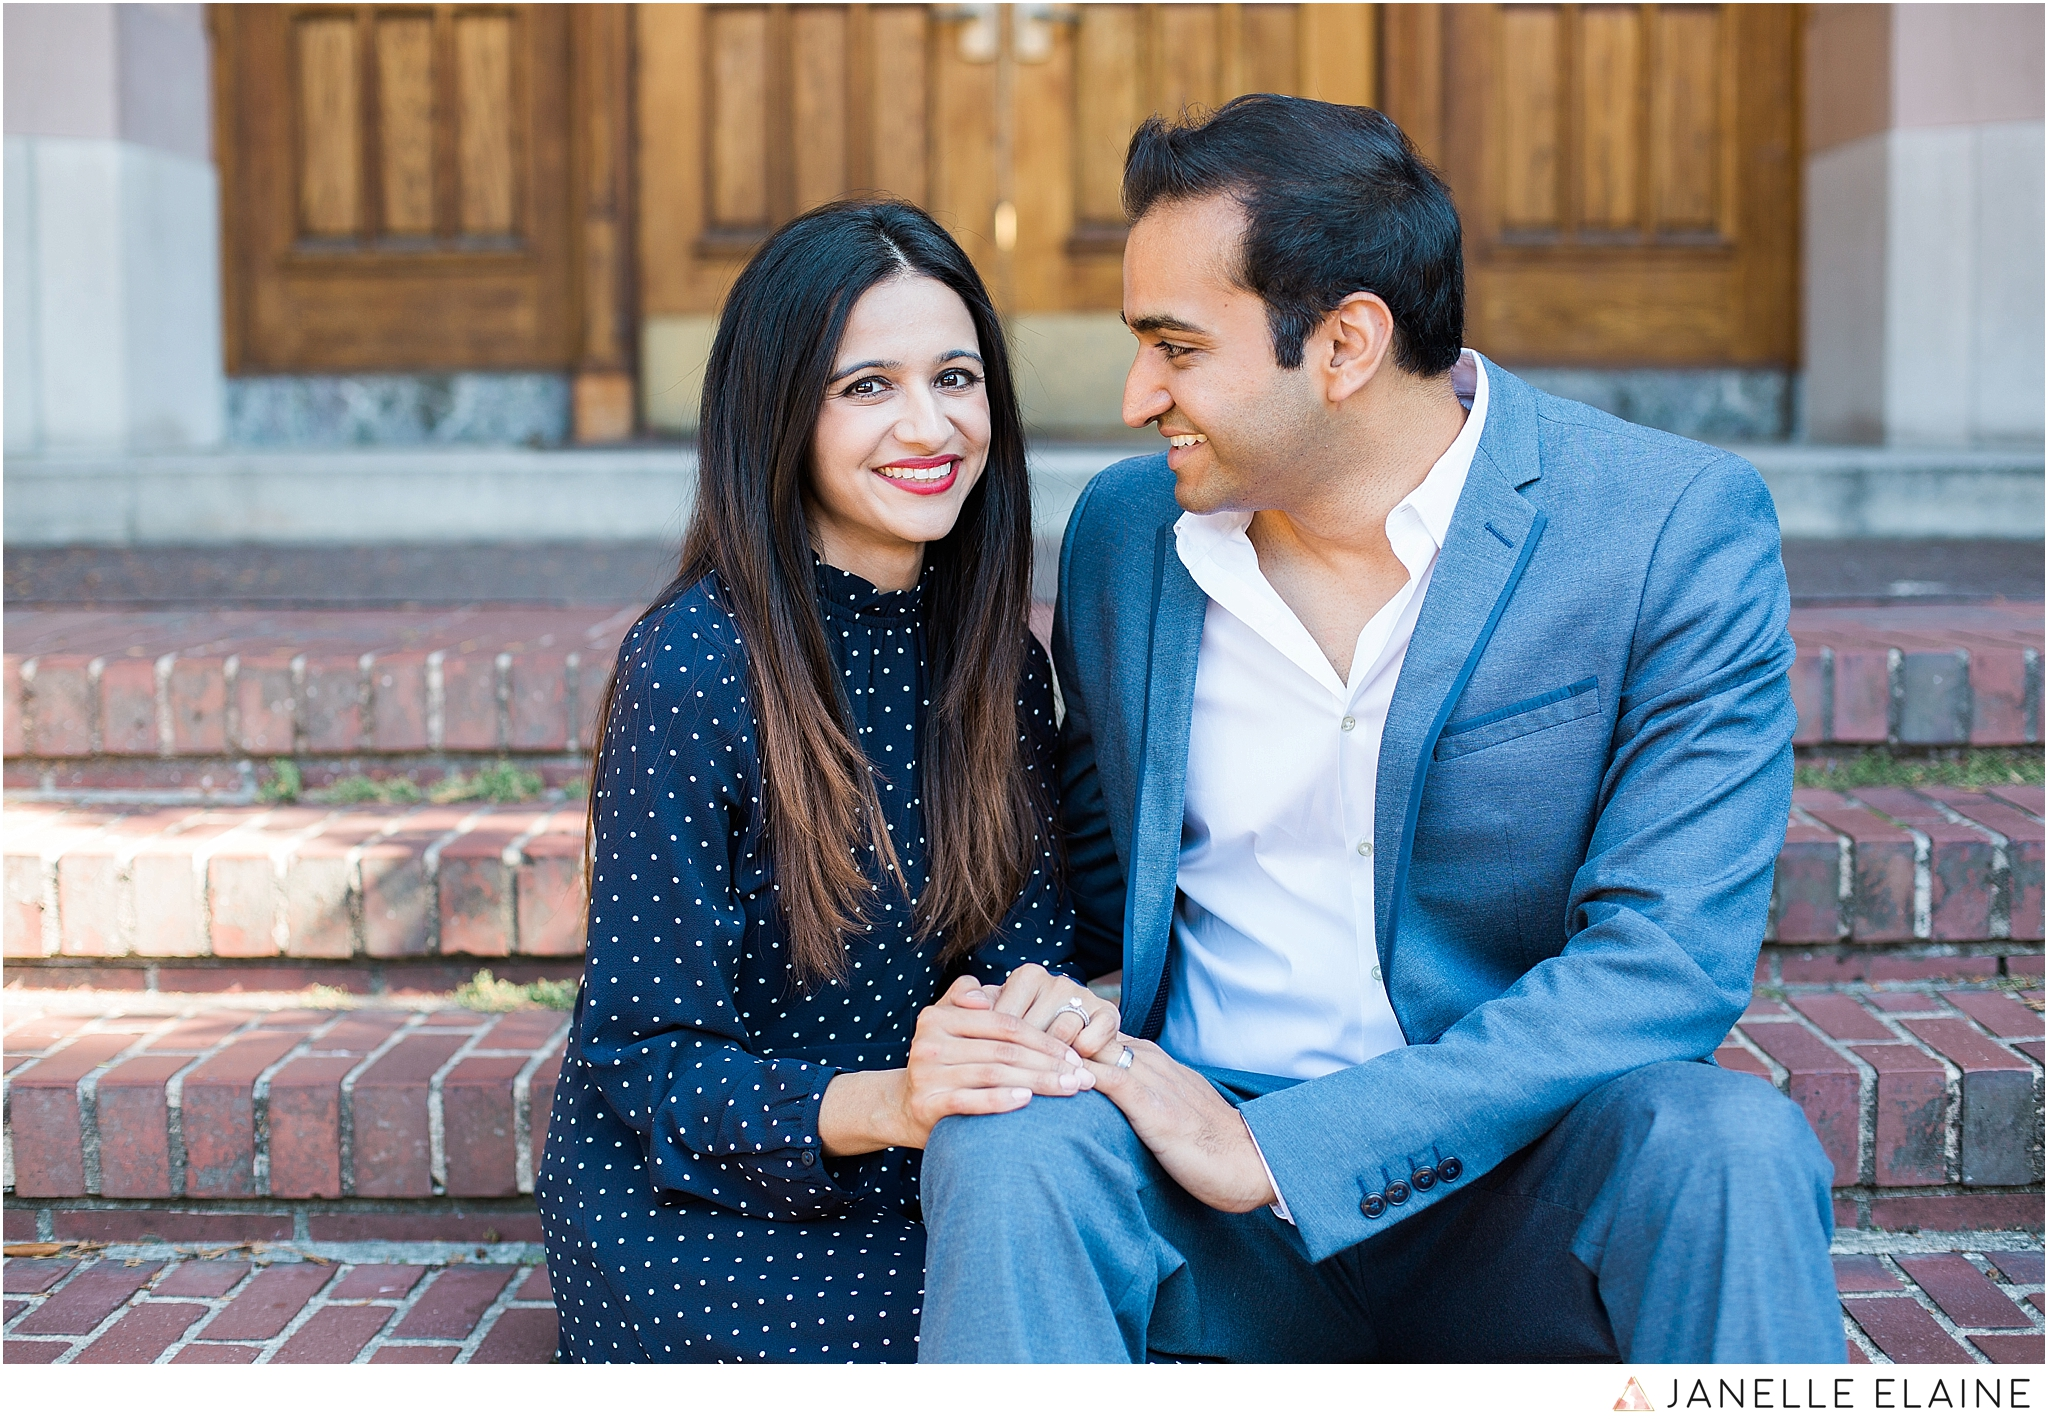 janelle elaine photography-zain and umema-seattle-uw-red square-engagement-photographer-22.jpg